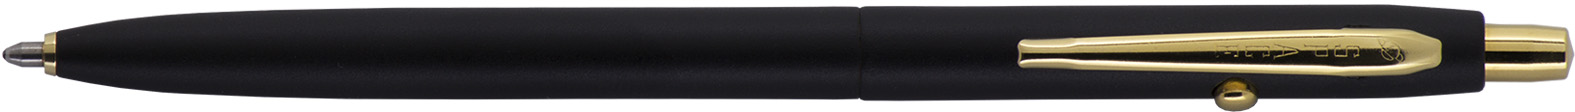 CH4B - FISHER Matte Black Shuttle Space Pen